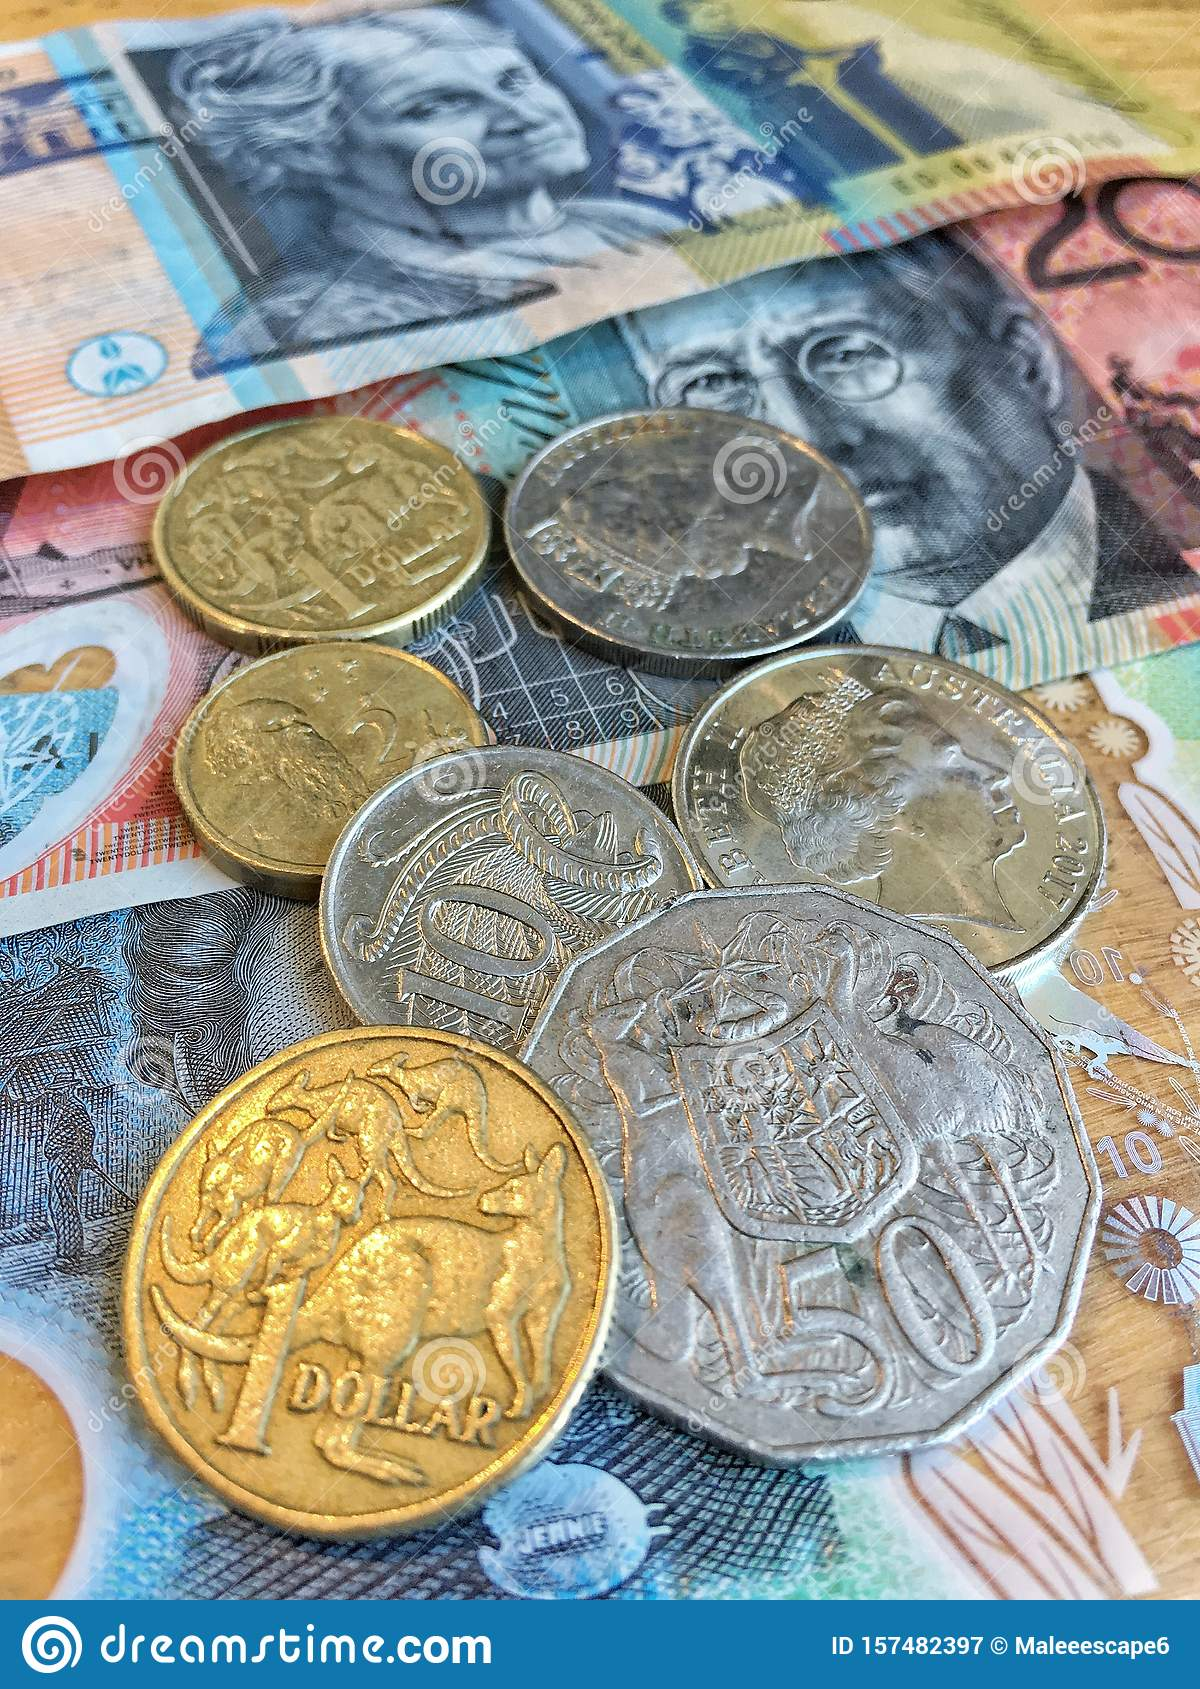 Australian Dollars AUD bank notes and coins background